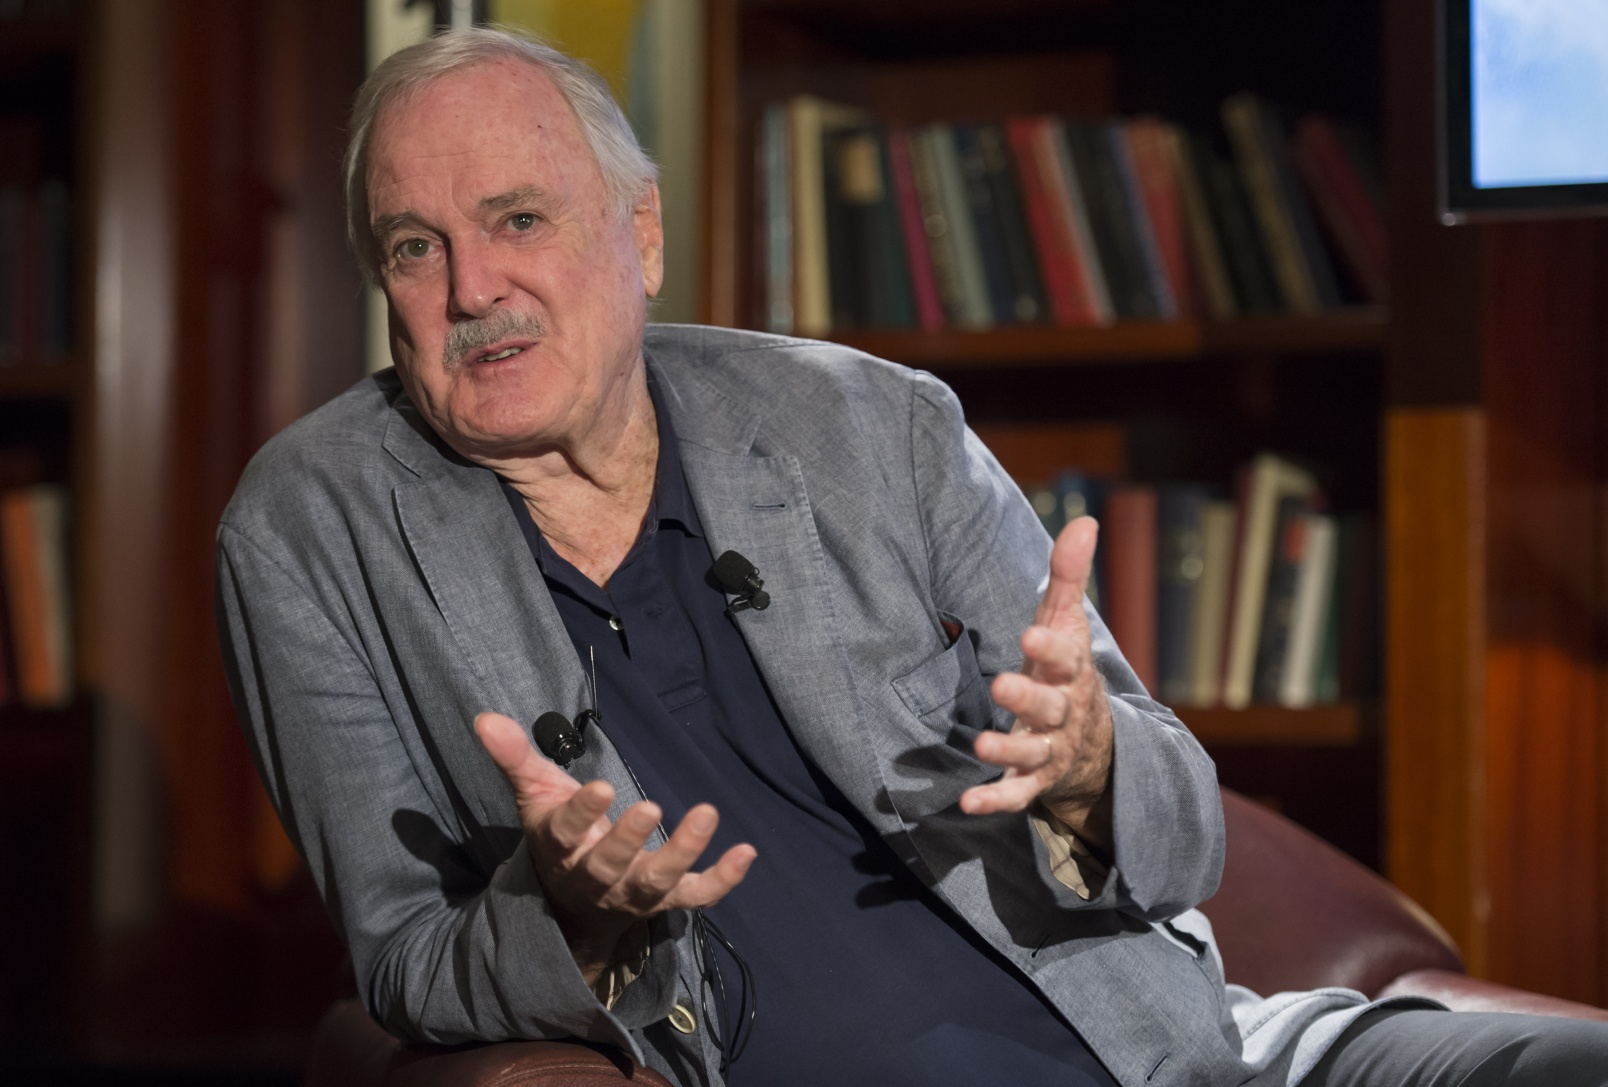 John Cleese is having to eat his words over 'worthless' General Election tweet